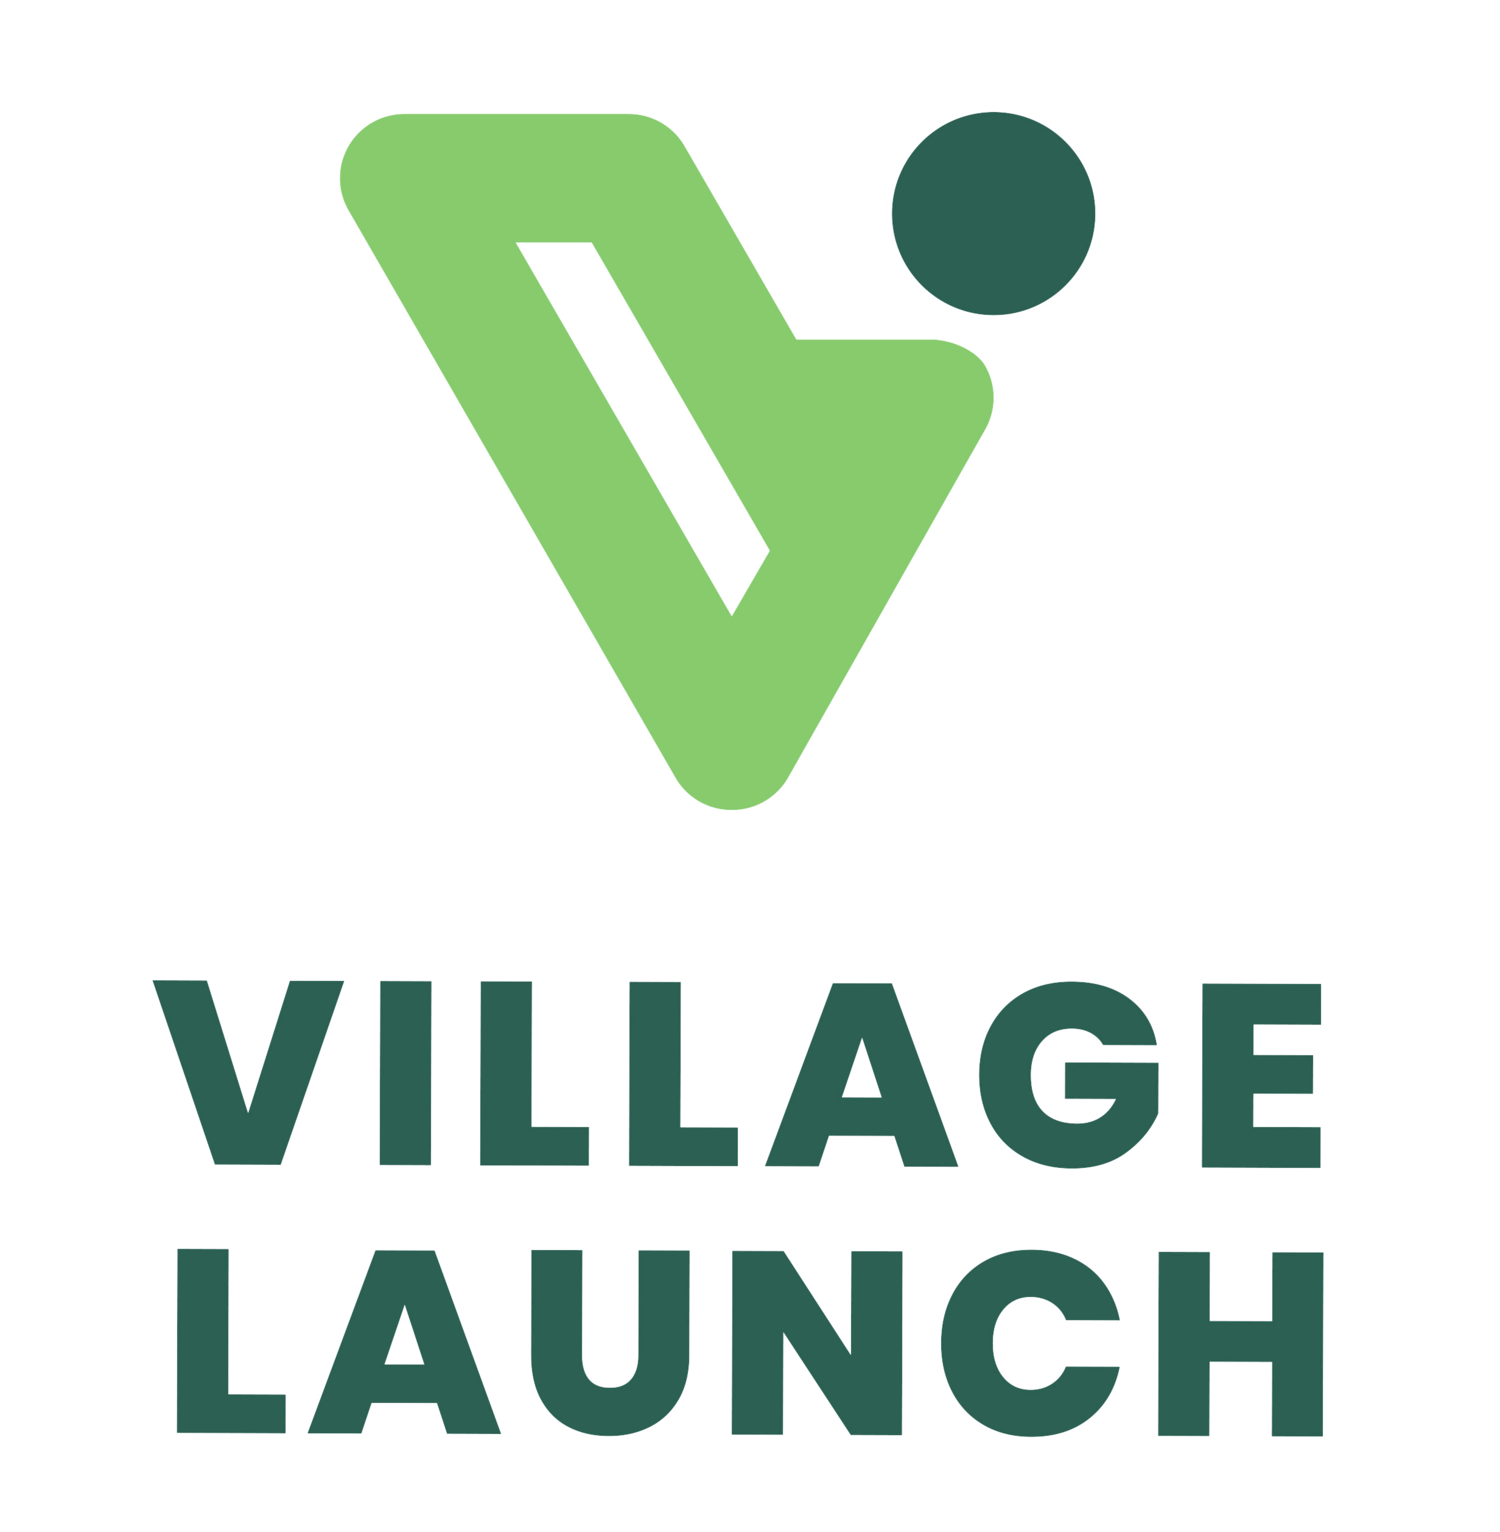 Village Launch